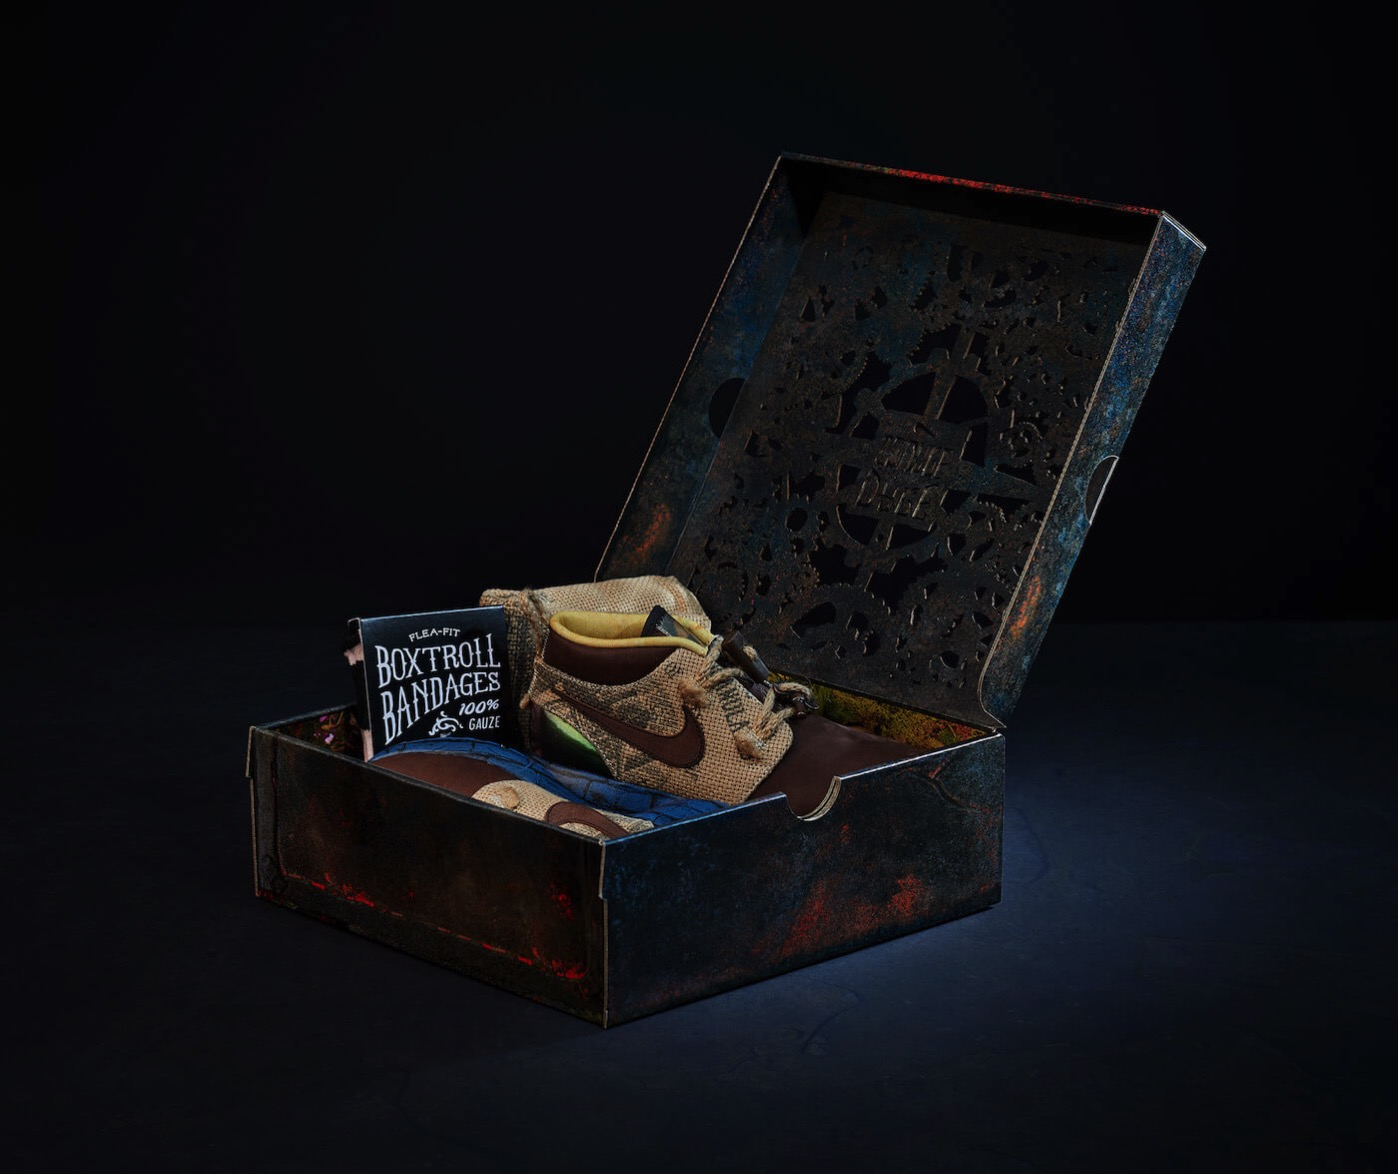 The boxtrolls nike shoe laika 7